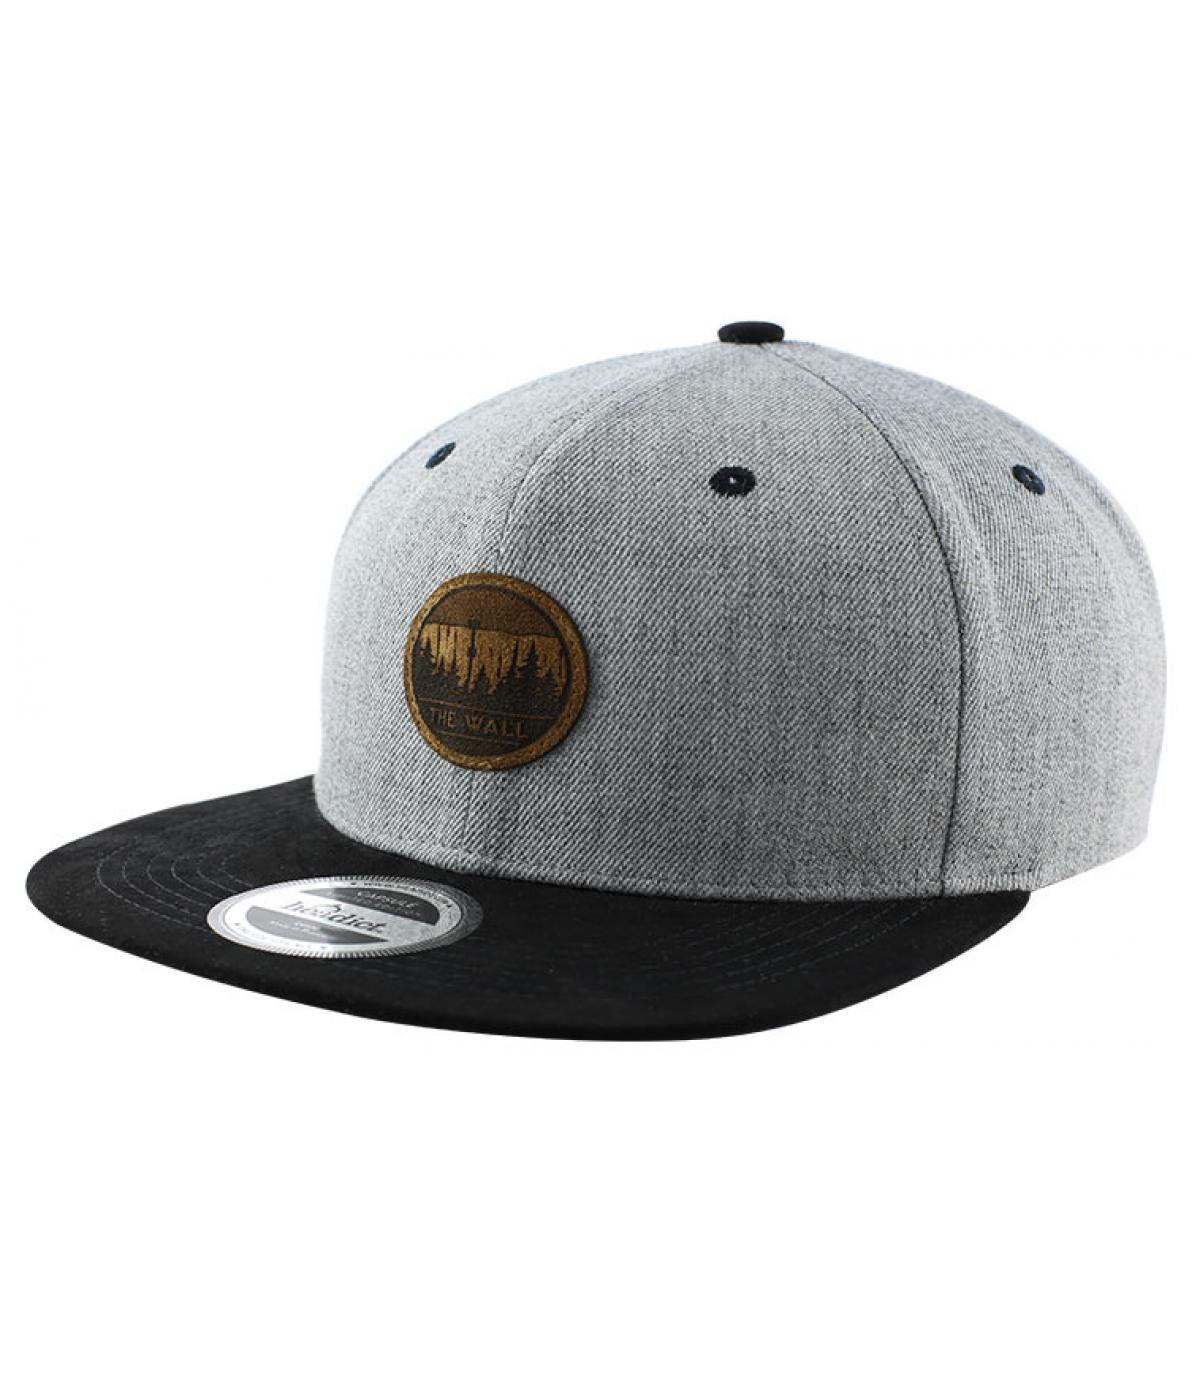 Détails Snapback The Wall grey black - image 2